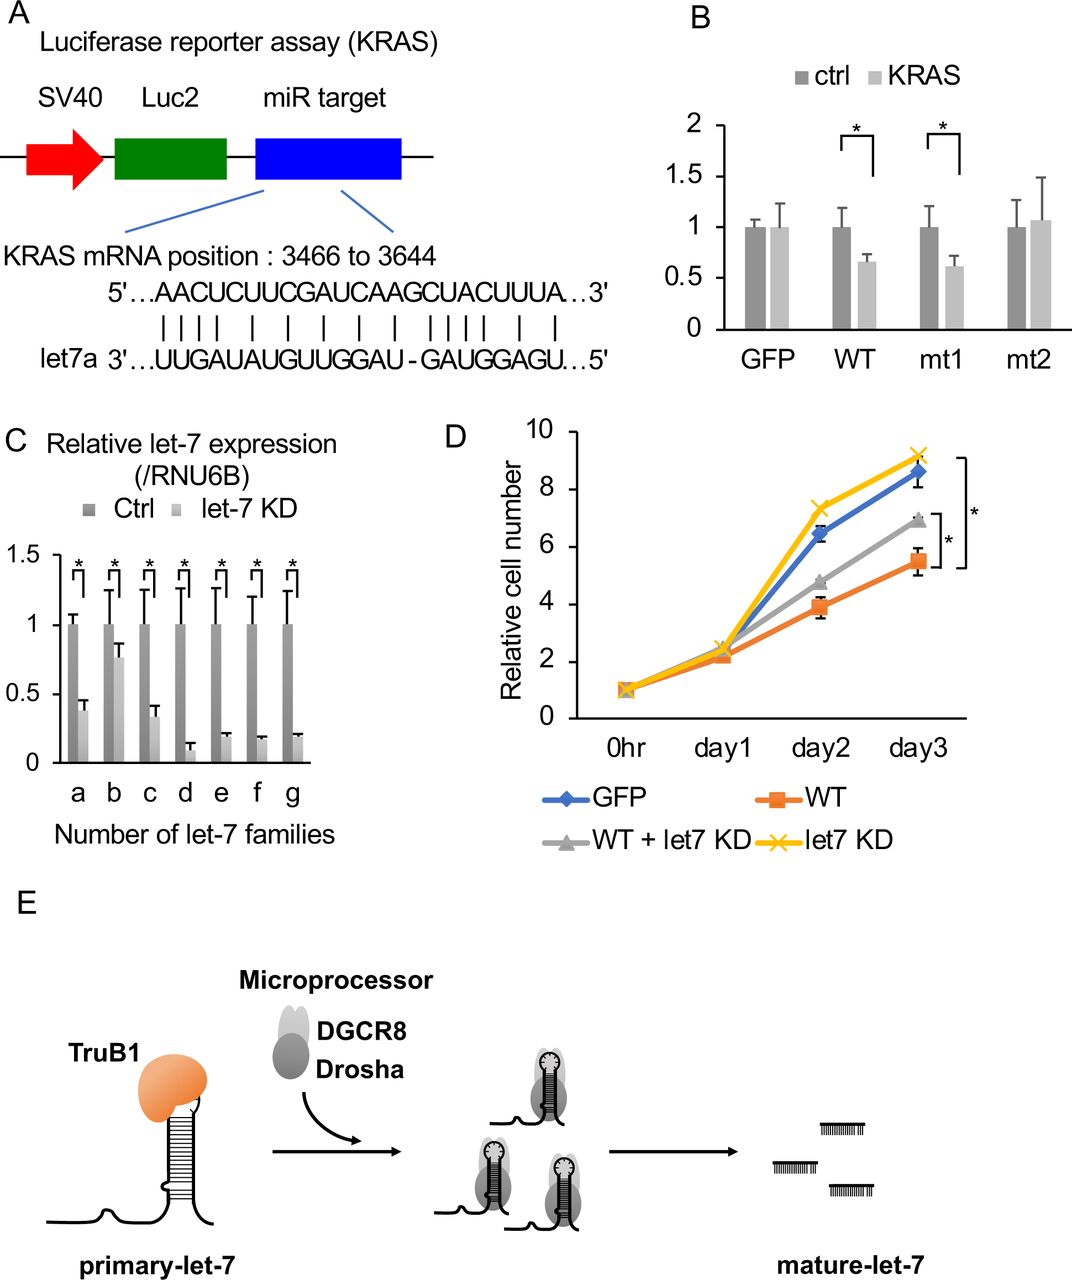 TruB1 suppresses cell growth by regulating let-7 (A). Design of luciferase reporter vector comprising the let-7 target region of KRAS mRNA (KRAS reporter). (B). Relative luciferase activity of KRAS reporter or Ctrl (empty) reporter in HEK293FT cells infected with lentiviruses expressing tetracycline-inducible TruB1, mt1, mt2, or GFP 5 days after doxycycline treatment. (C). Relative expression of let-7 families determined by qRT-PCR in HEK-293FT cells with KD of let-7 family members or ctrl (using 2'-O-methylated antisense inhibitor). (D). Real-time glo assay for HEK293FT cells infected with lentiviruses expressing tetracycline-inducible TruB1 or GFP, 5 days after doxycycline treatment, with or without KD of let-7 family members. (E). Schematic model for TruB1-dependent induction of let-7. All experiments were performed in triplicate. Error bars show SD; n=3.